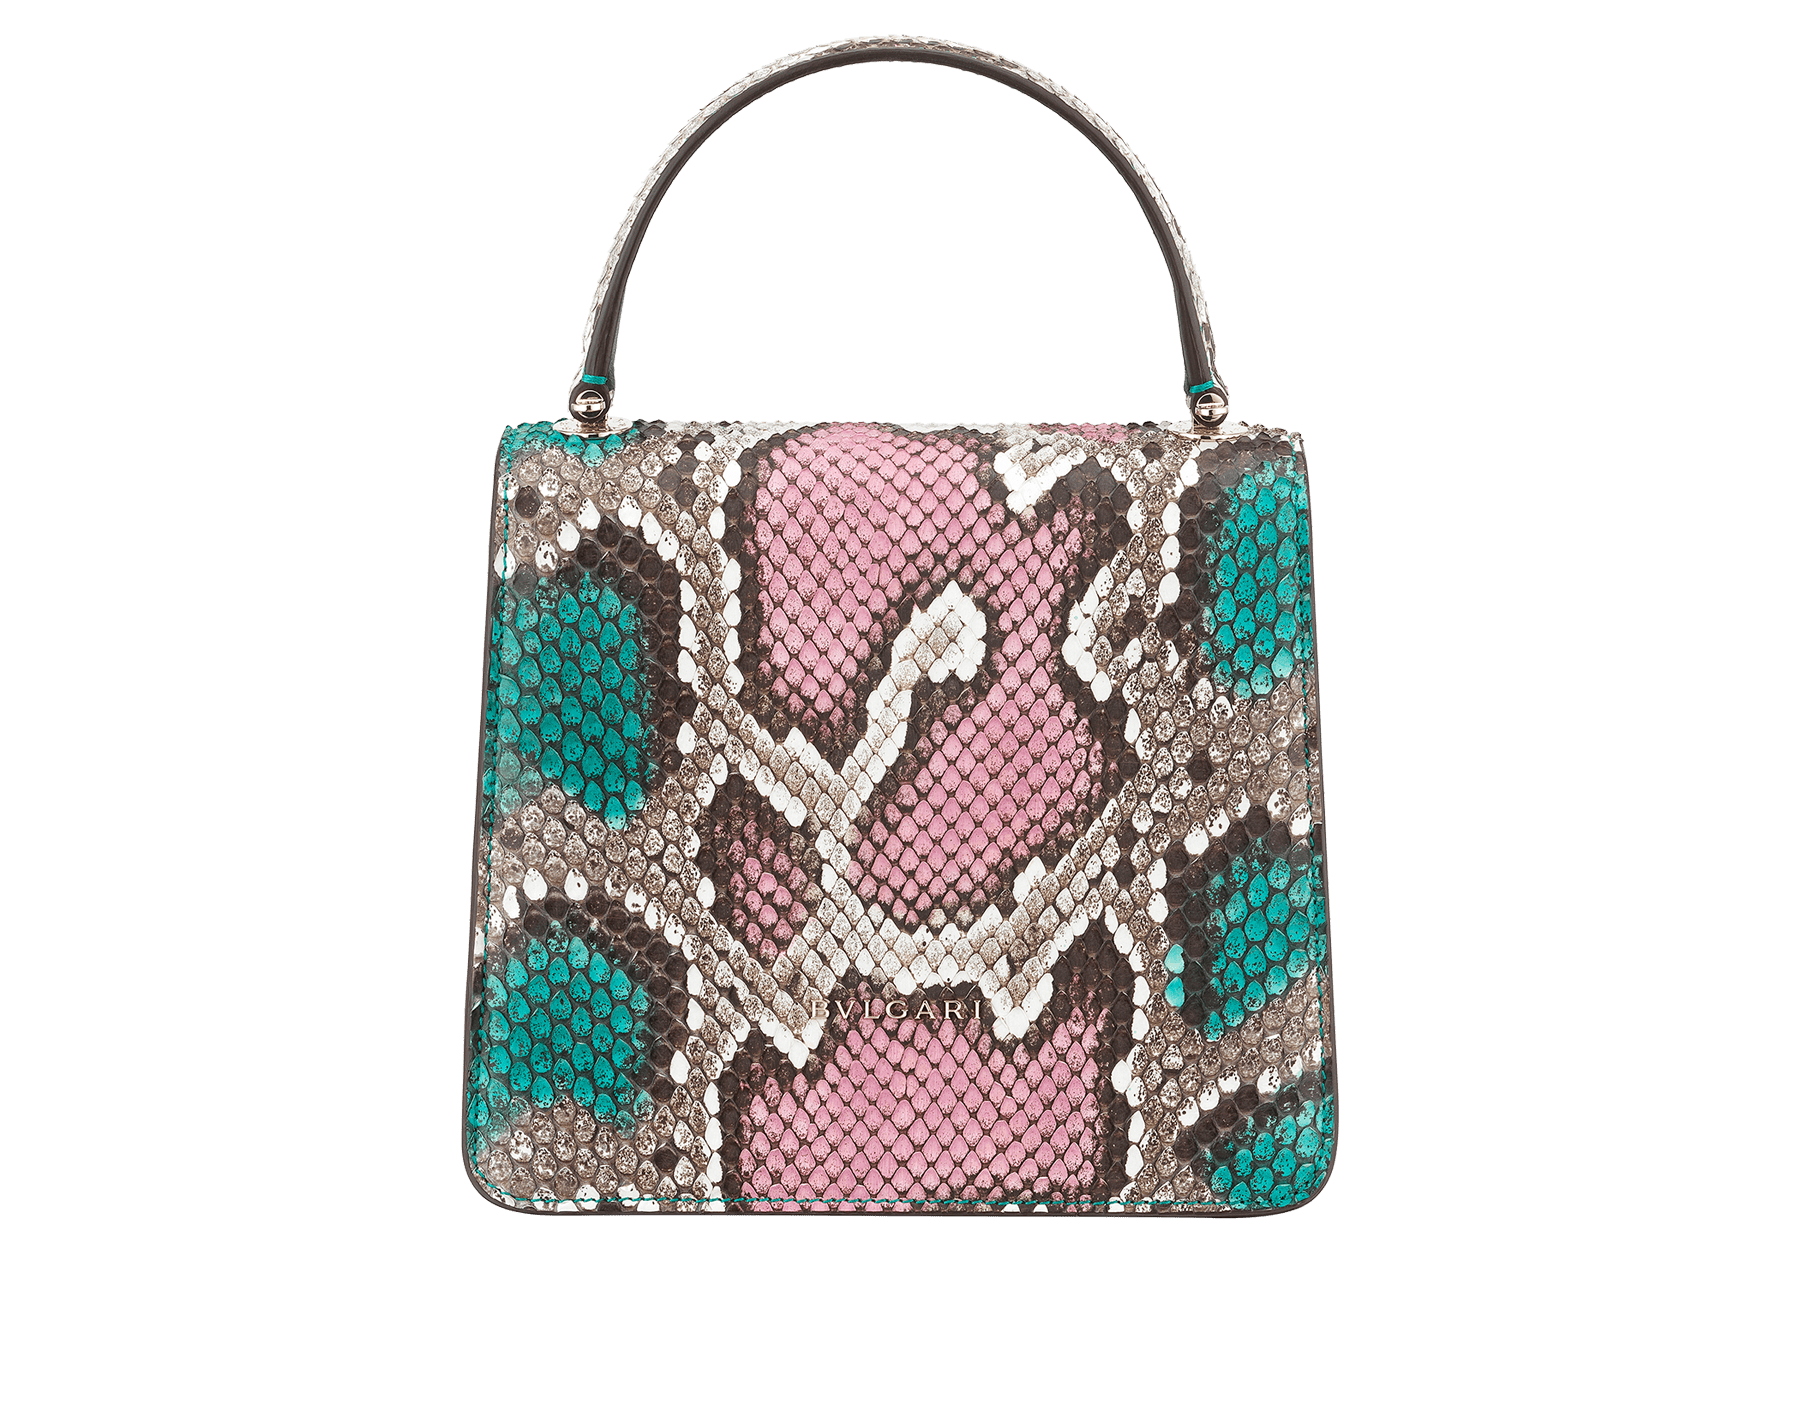 Serpenti Forever crossbody bag in black and white python skin with Whitethunder motif. Snakehead closure in shiny palladium plated brass decorated with black enamel, and black onyx eyes. 752-Pa image 3